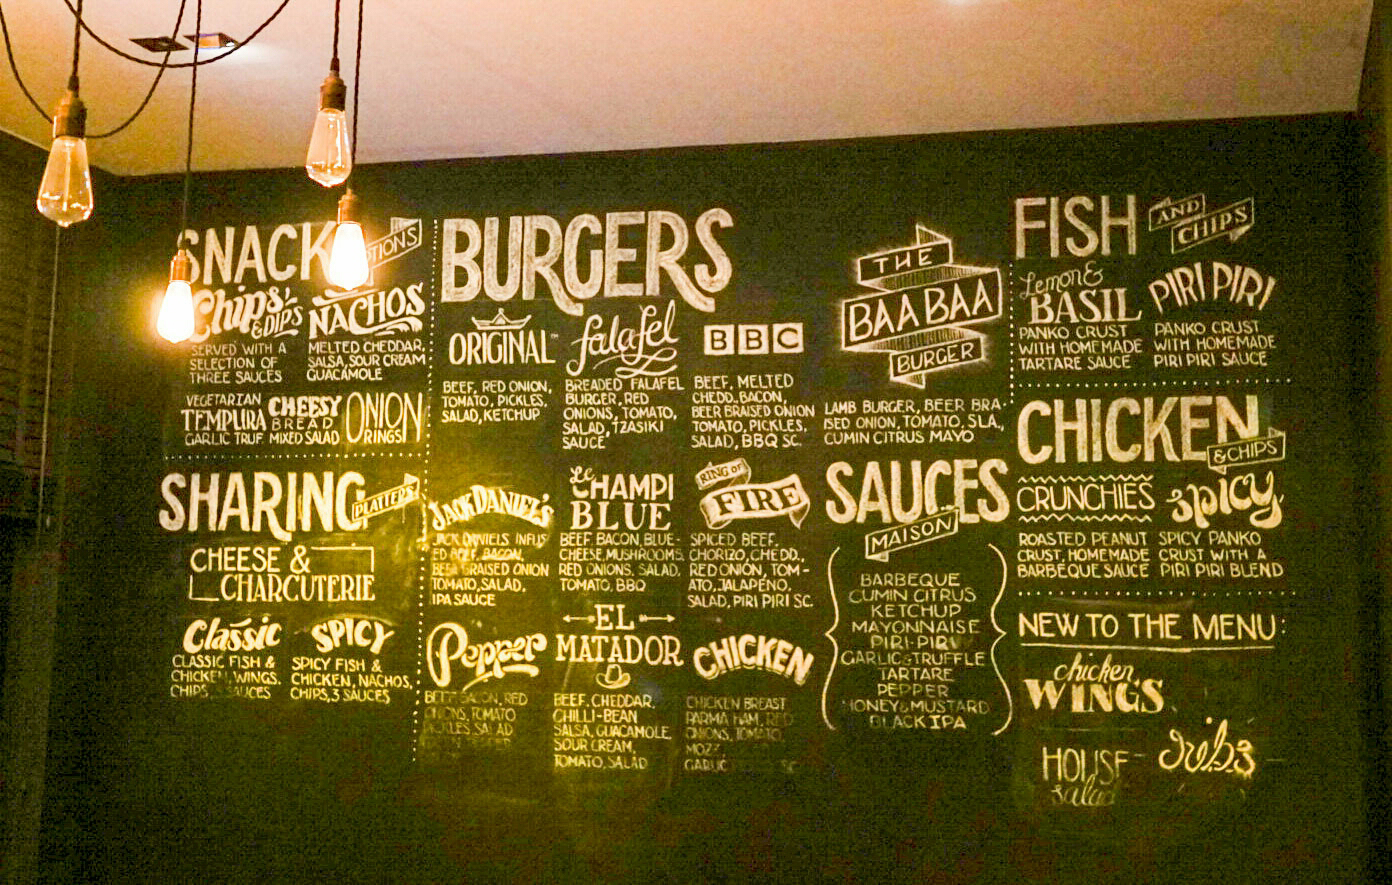 The food and beer panels are a good welcome to the bar. Most of the food goes well with a good craft beer on draught